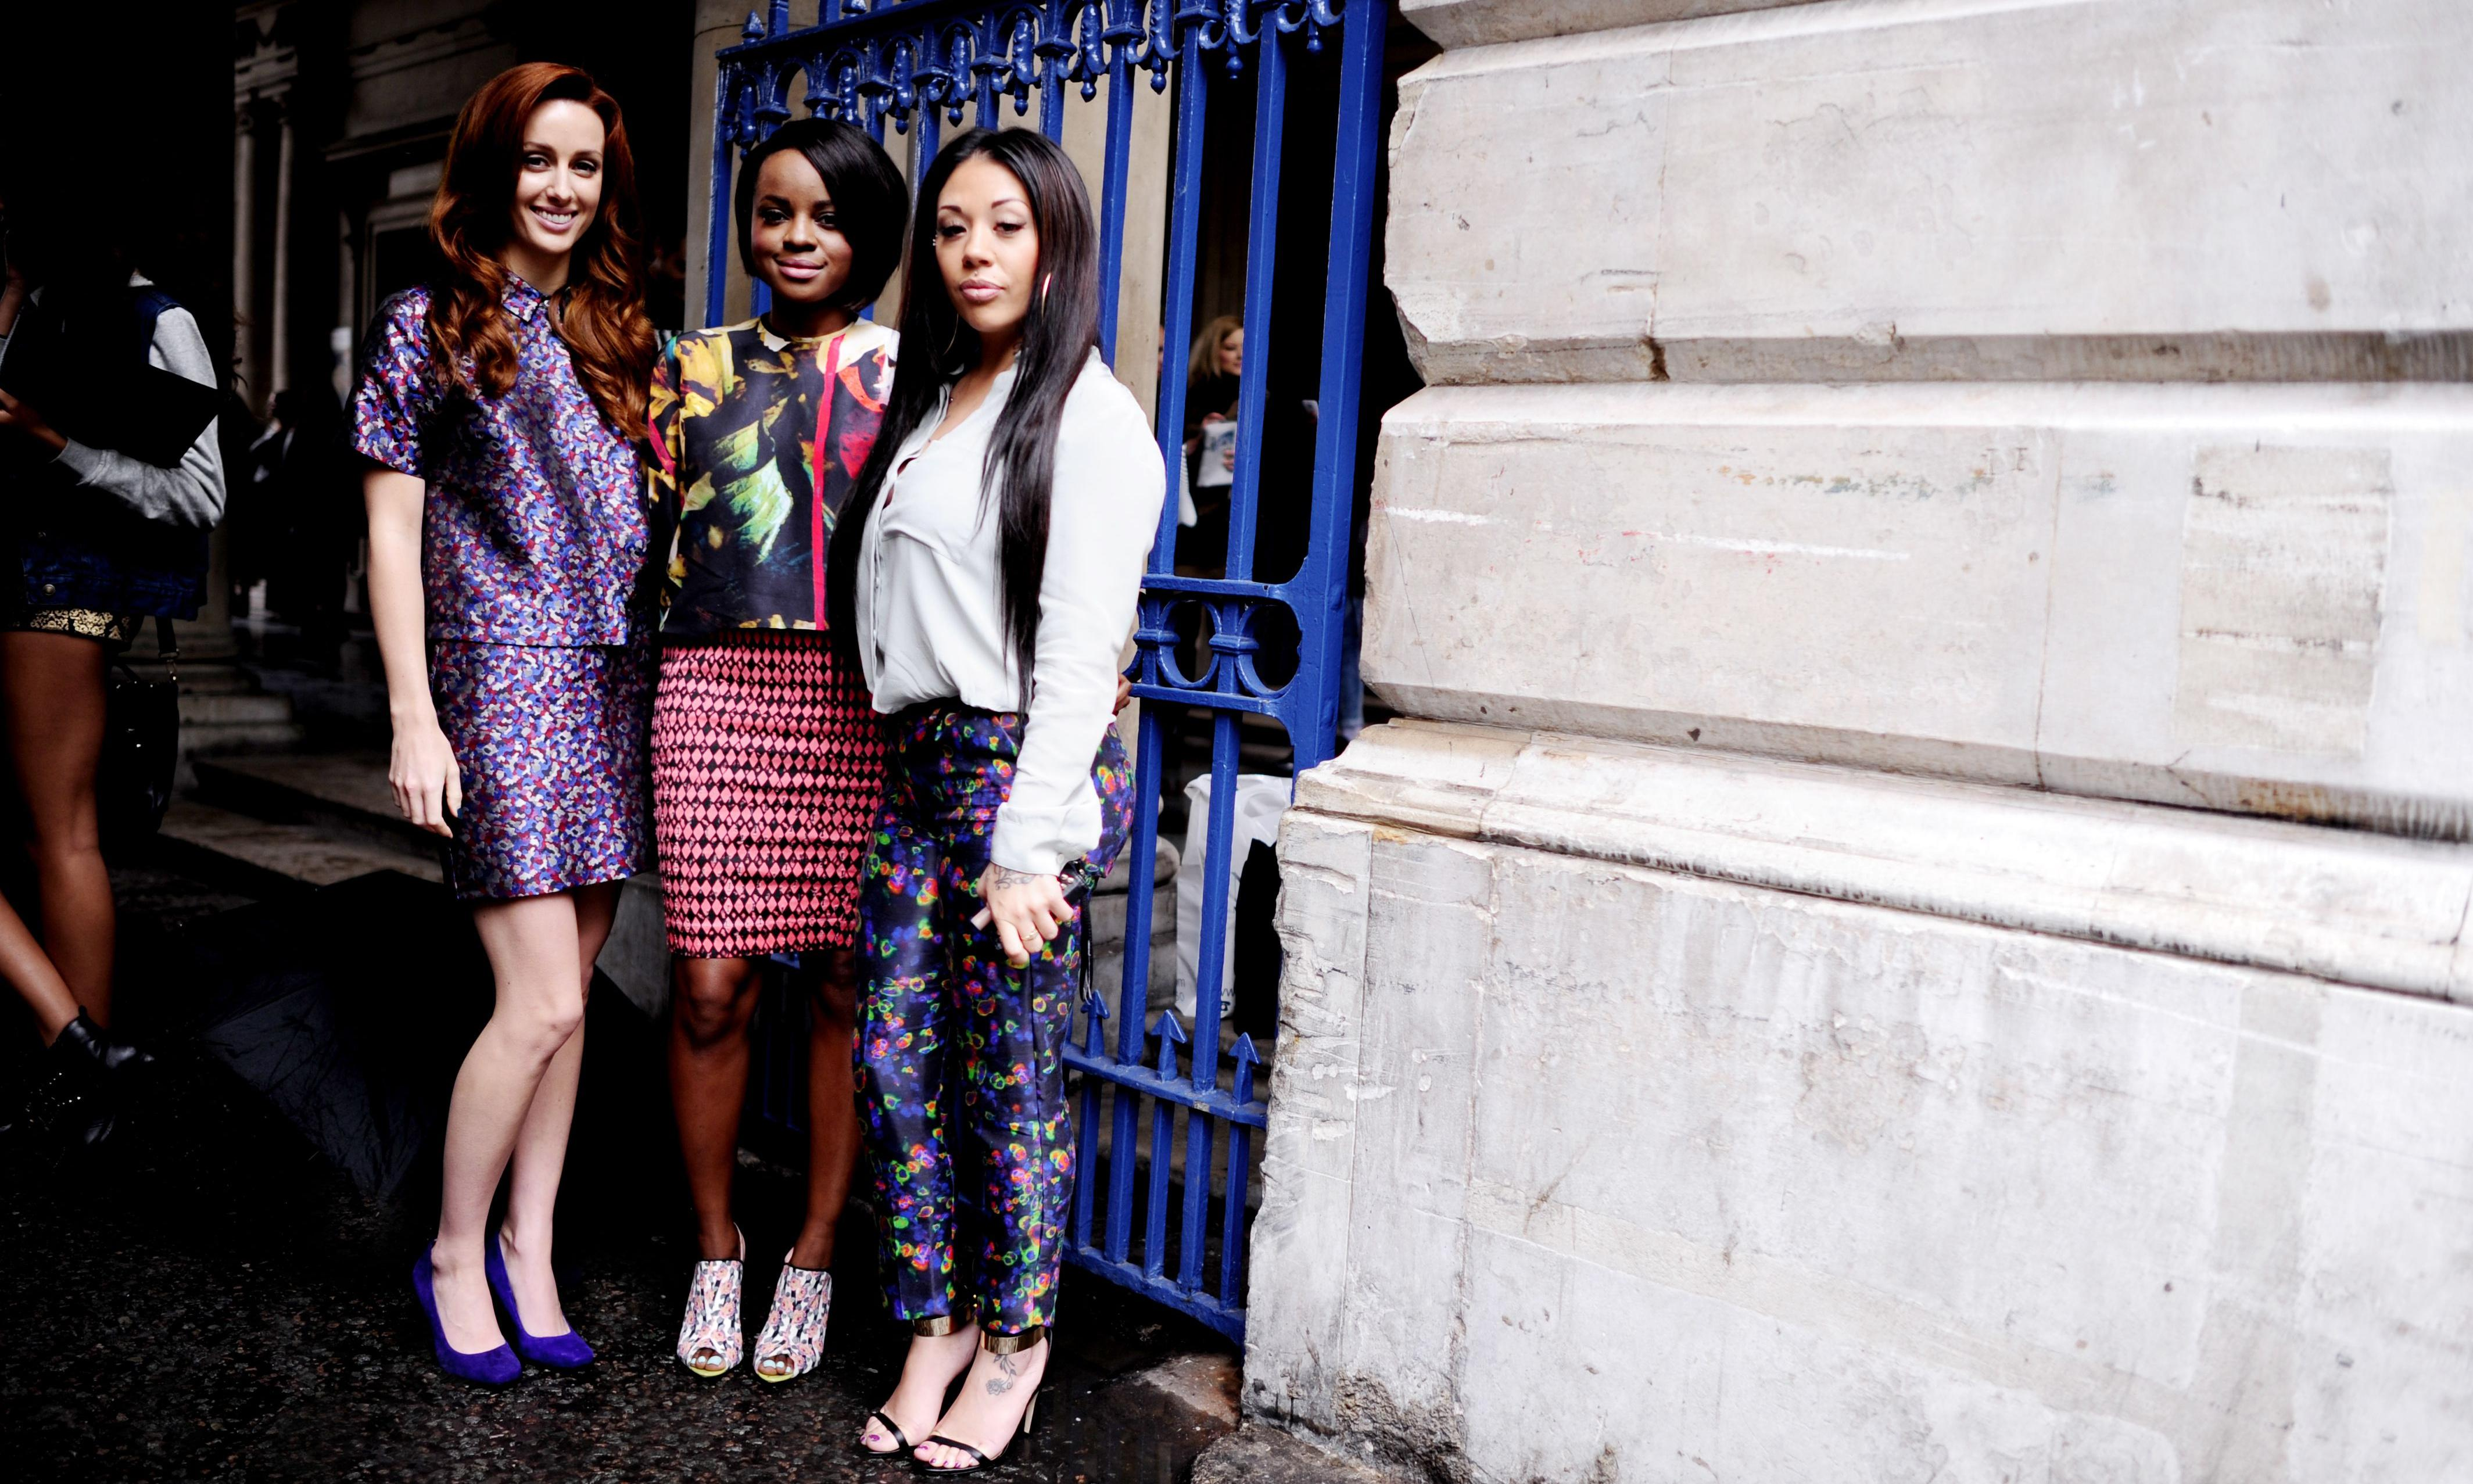 Are the original Sugababes getting back together?